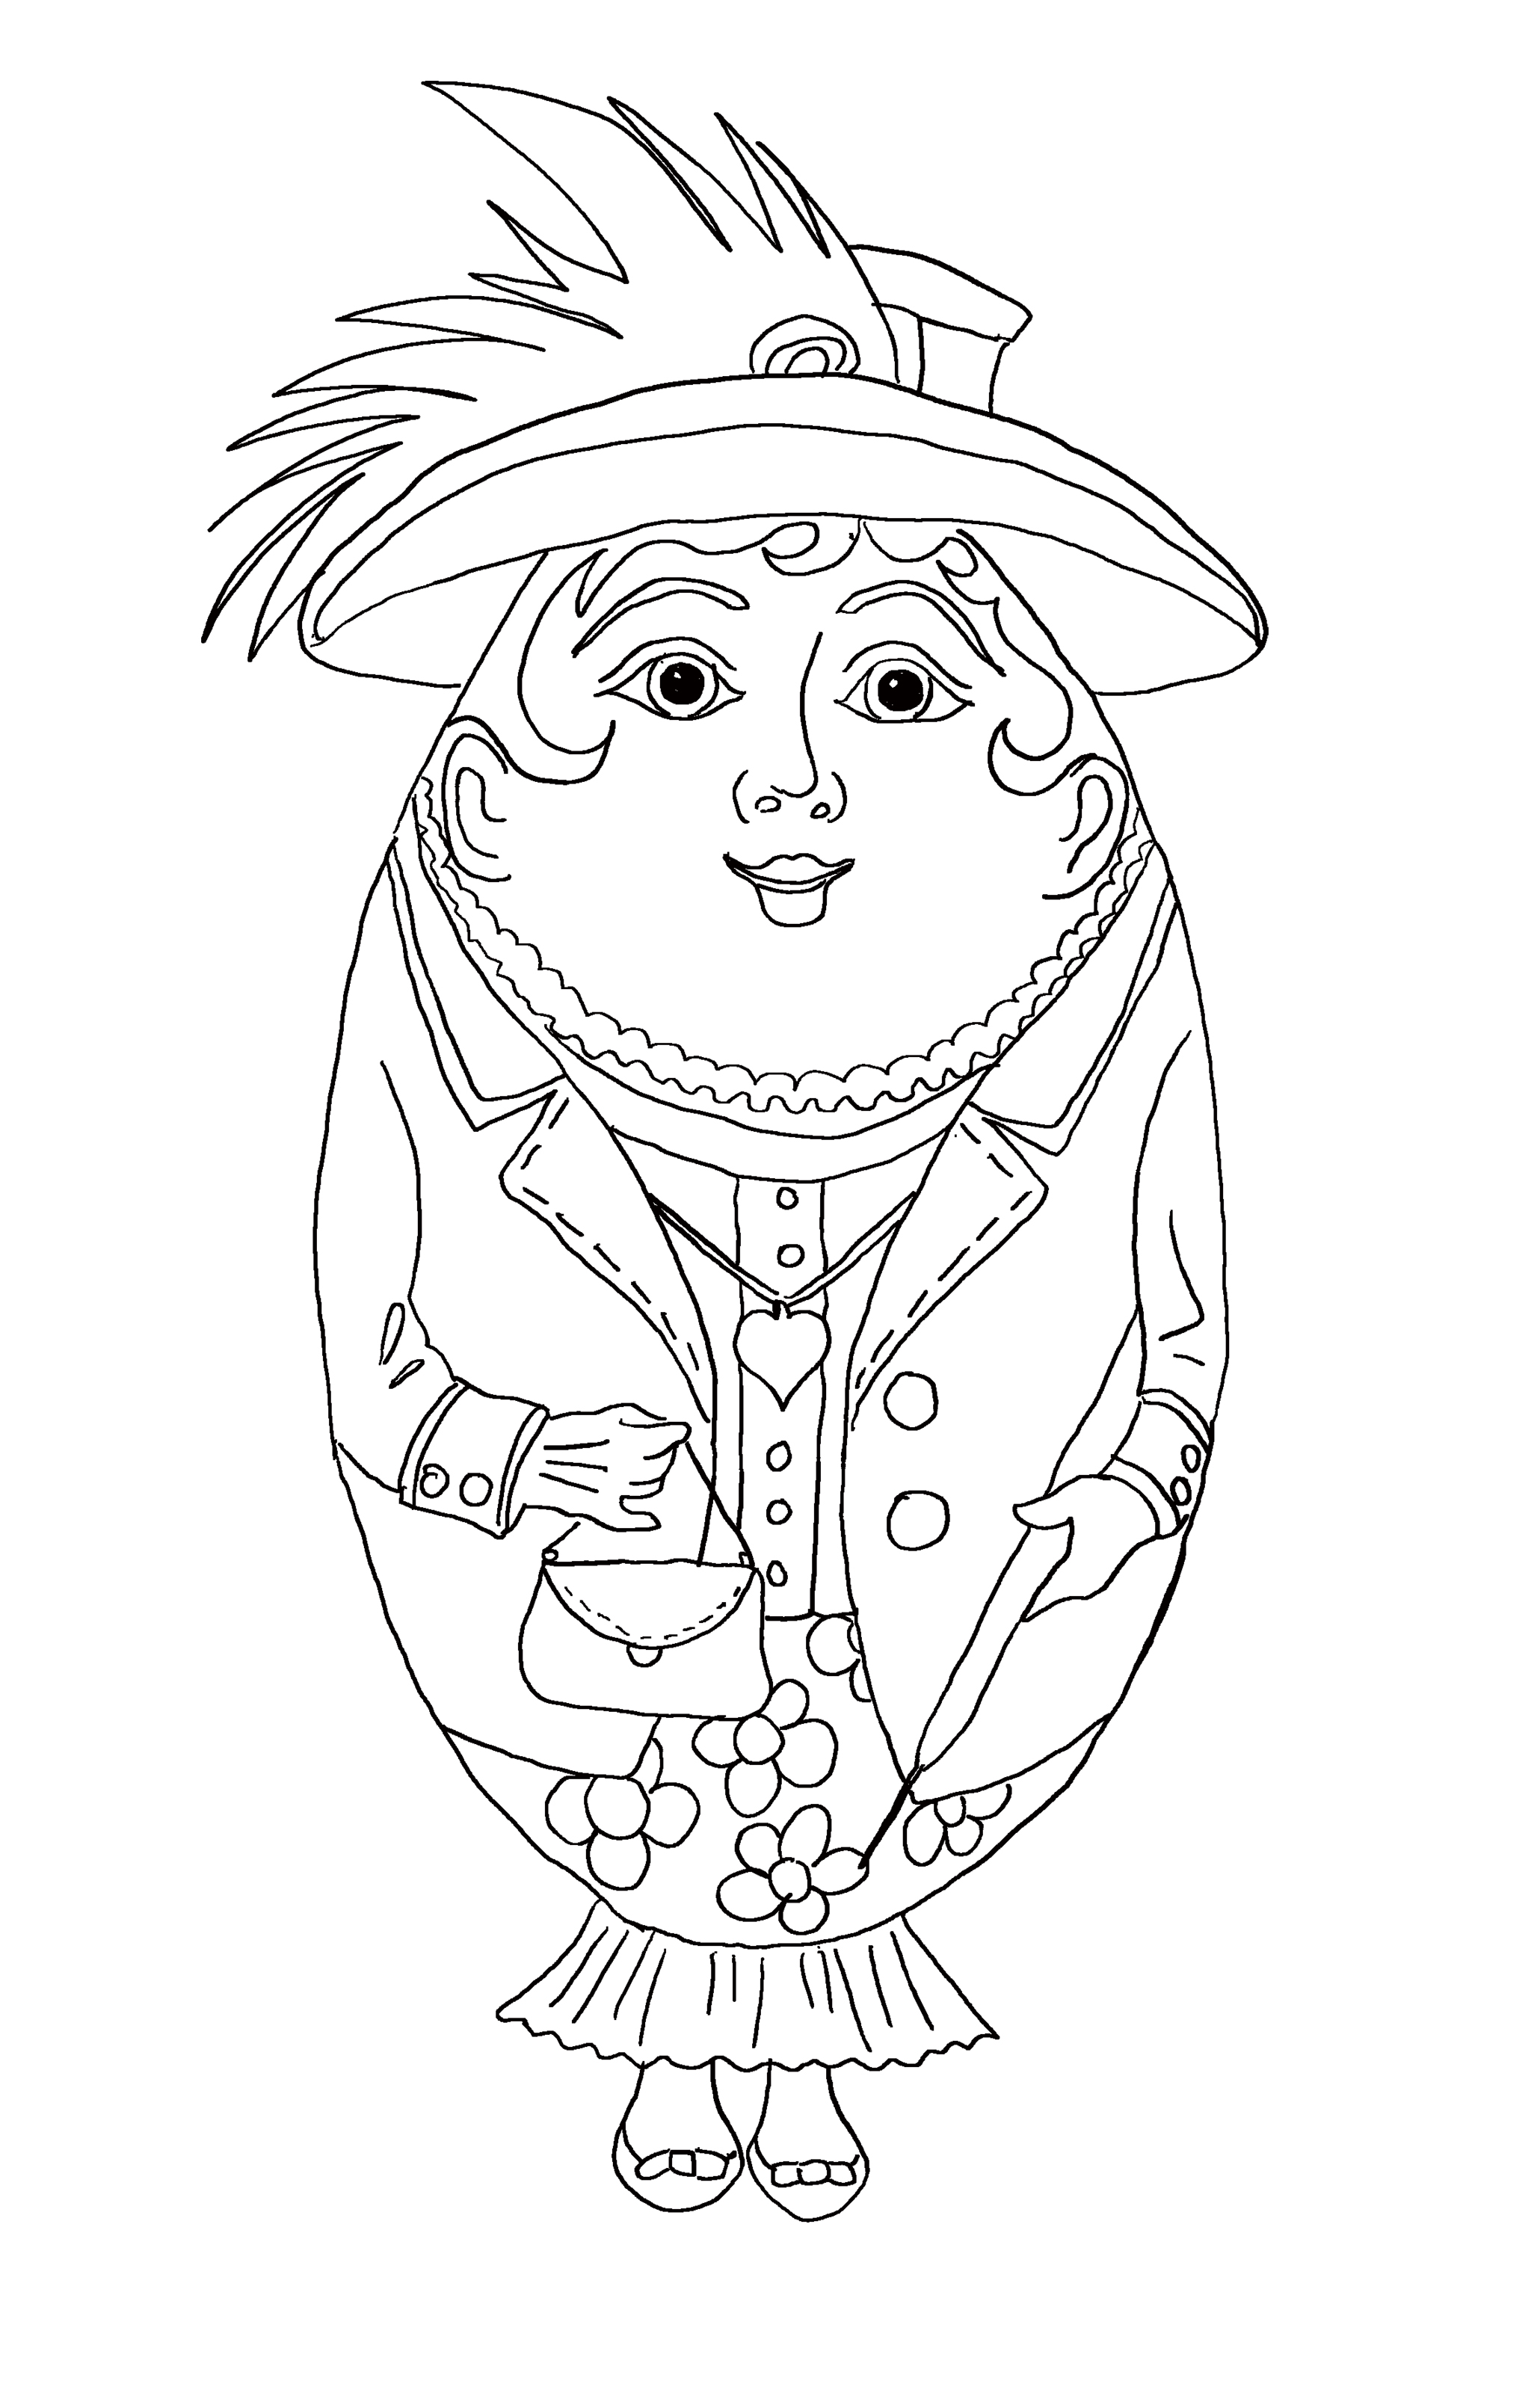 Funny vintage Easter egg woman. Coloring page for kids.